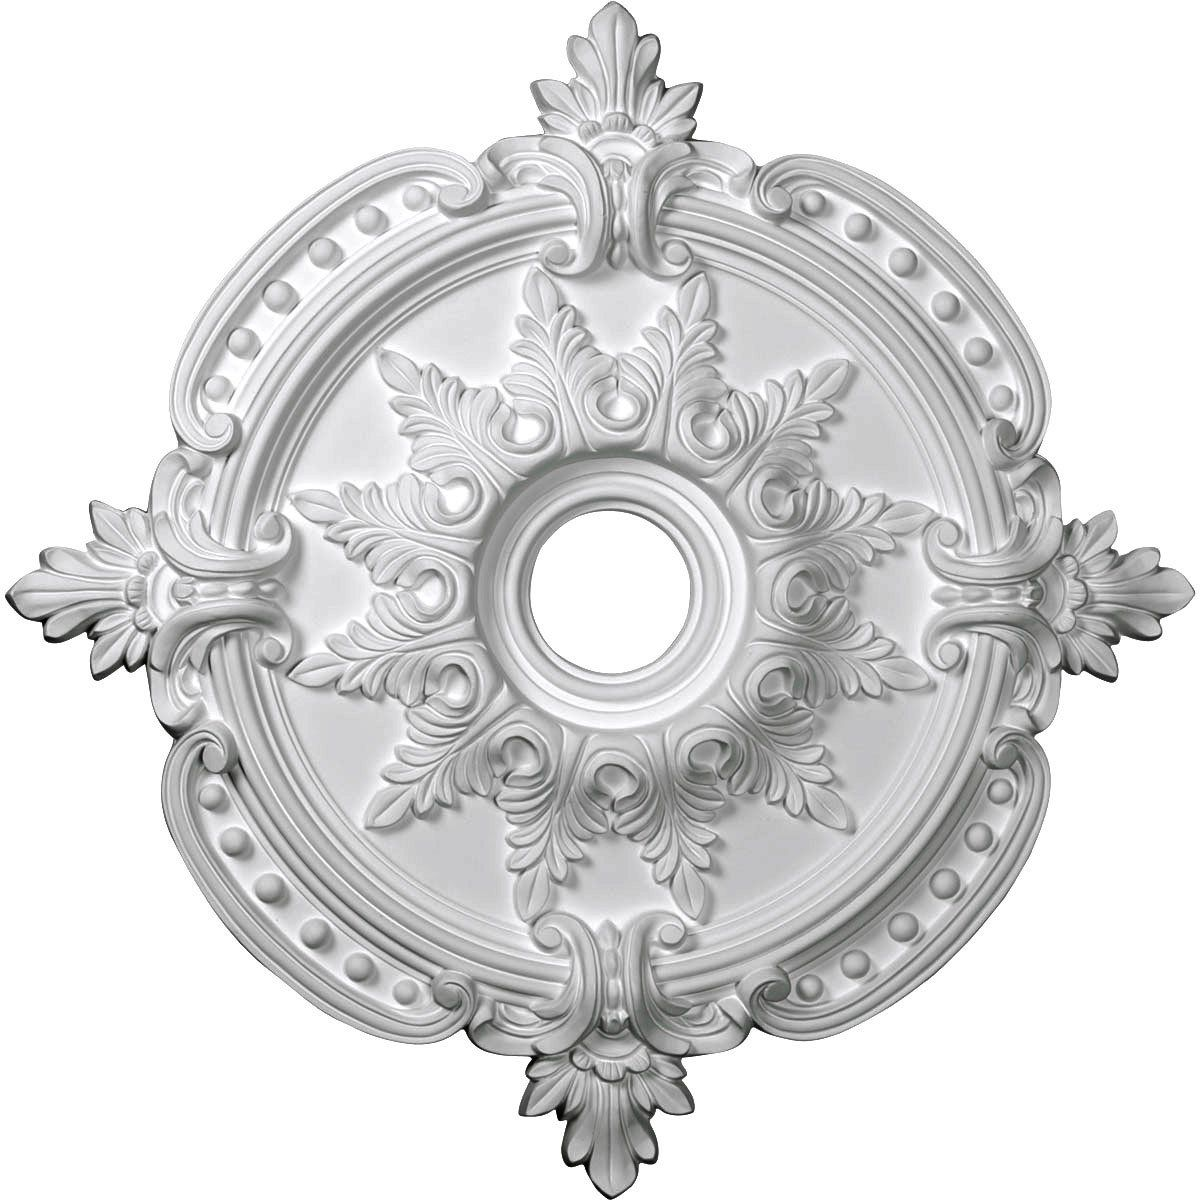 the millwork d in n ekena medallion accessories medallions ceiling lighting x o b